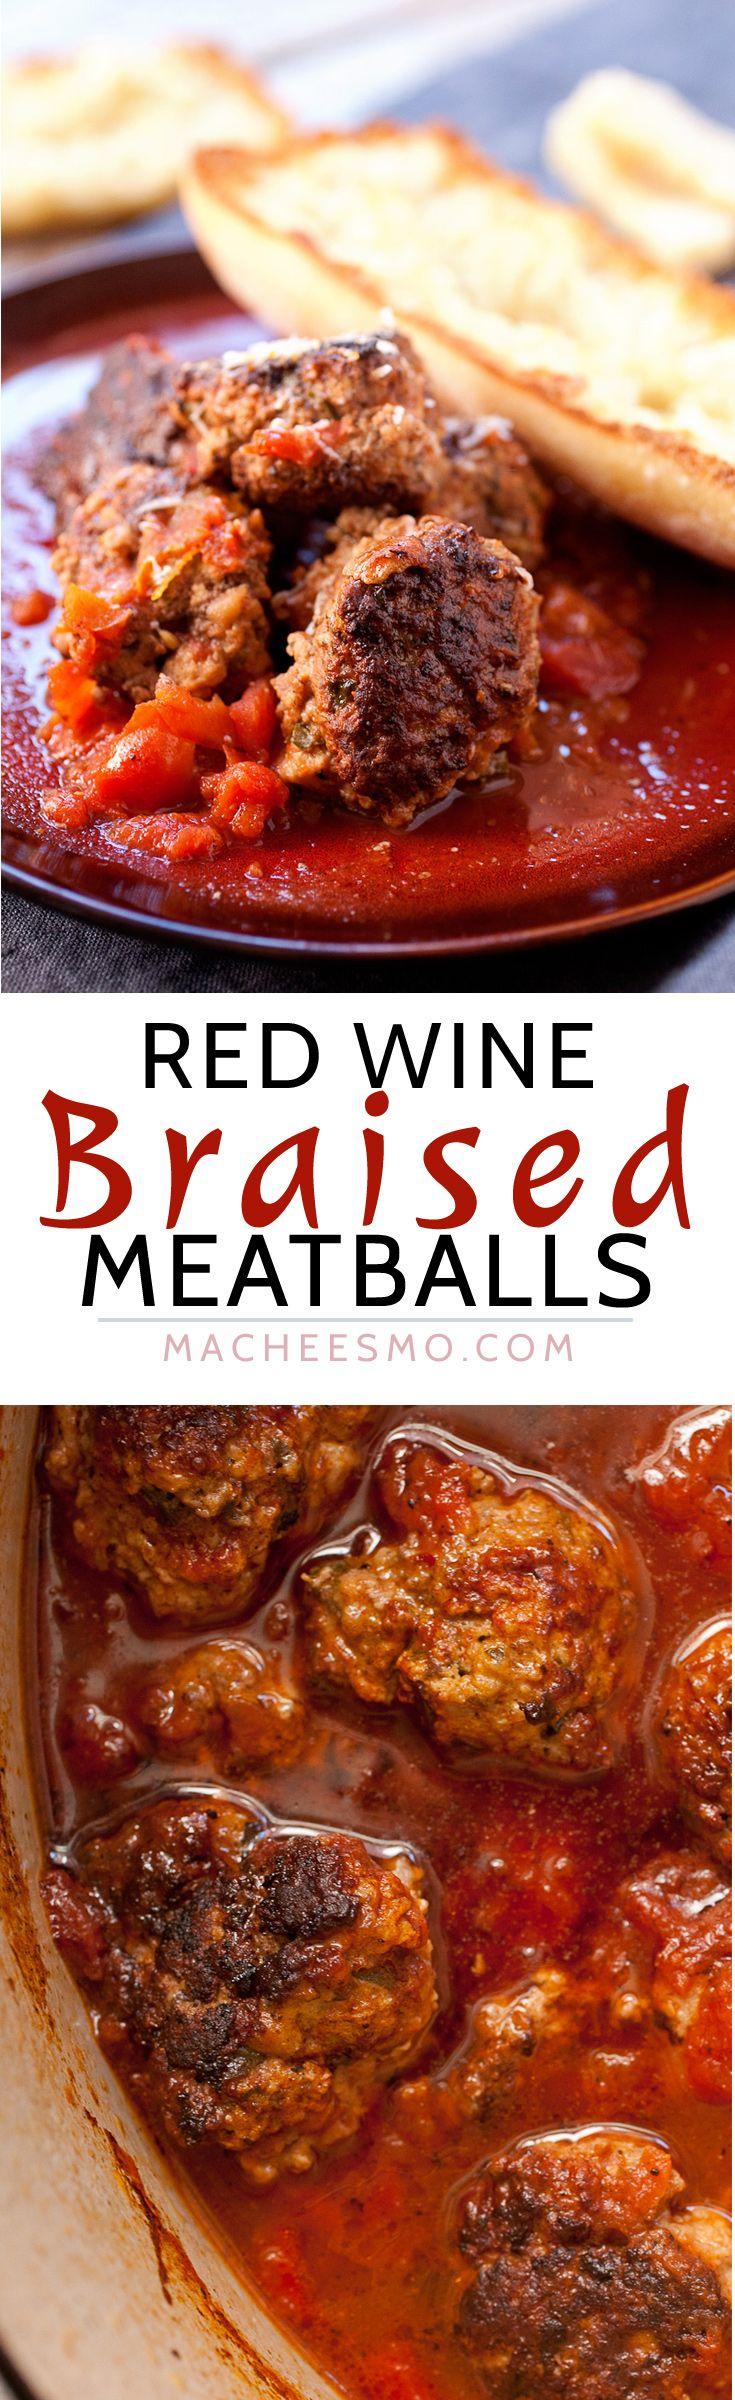 Braised Meatballs In Tomatoes And Red Wine Macheesmo Recipe Braised Meatballs Cooking Recipes